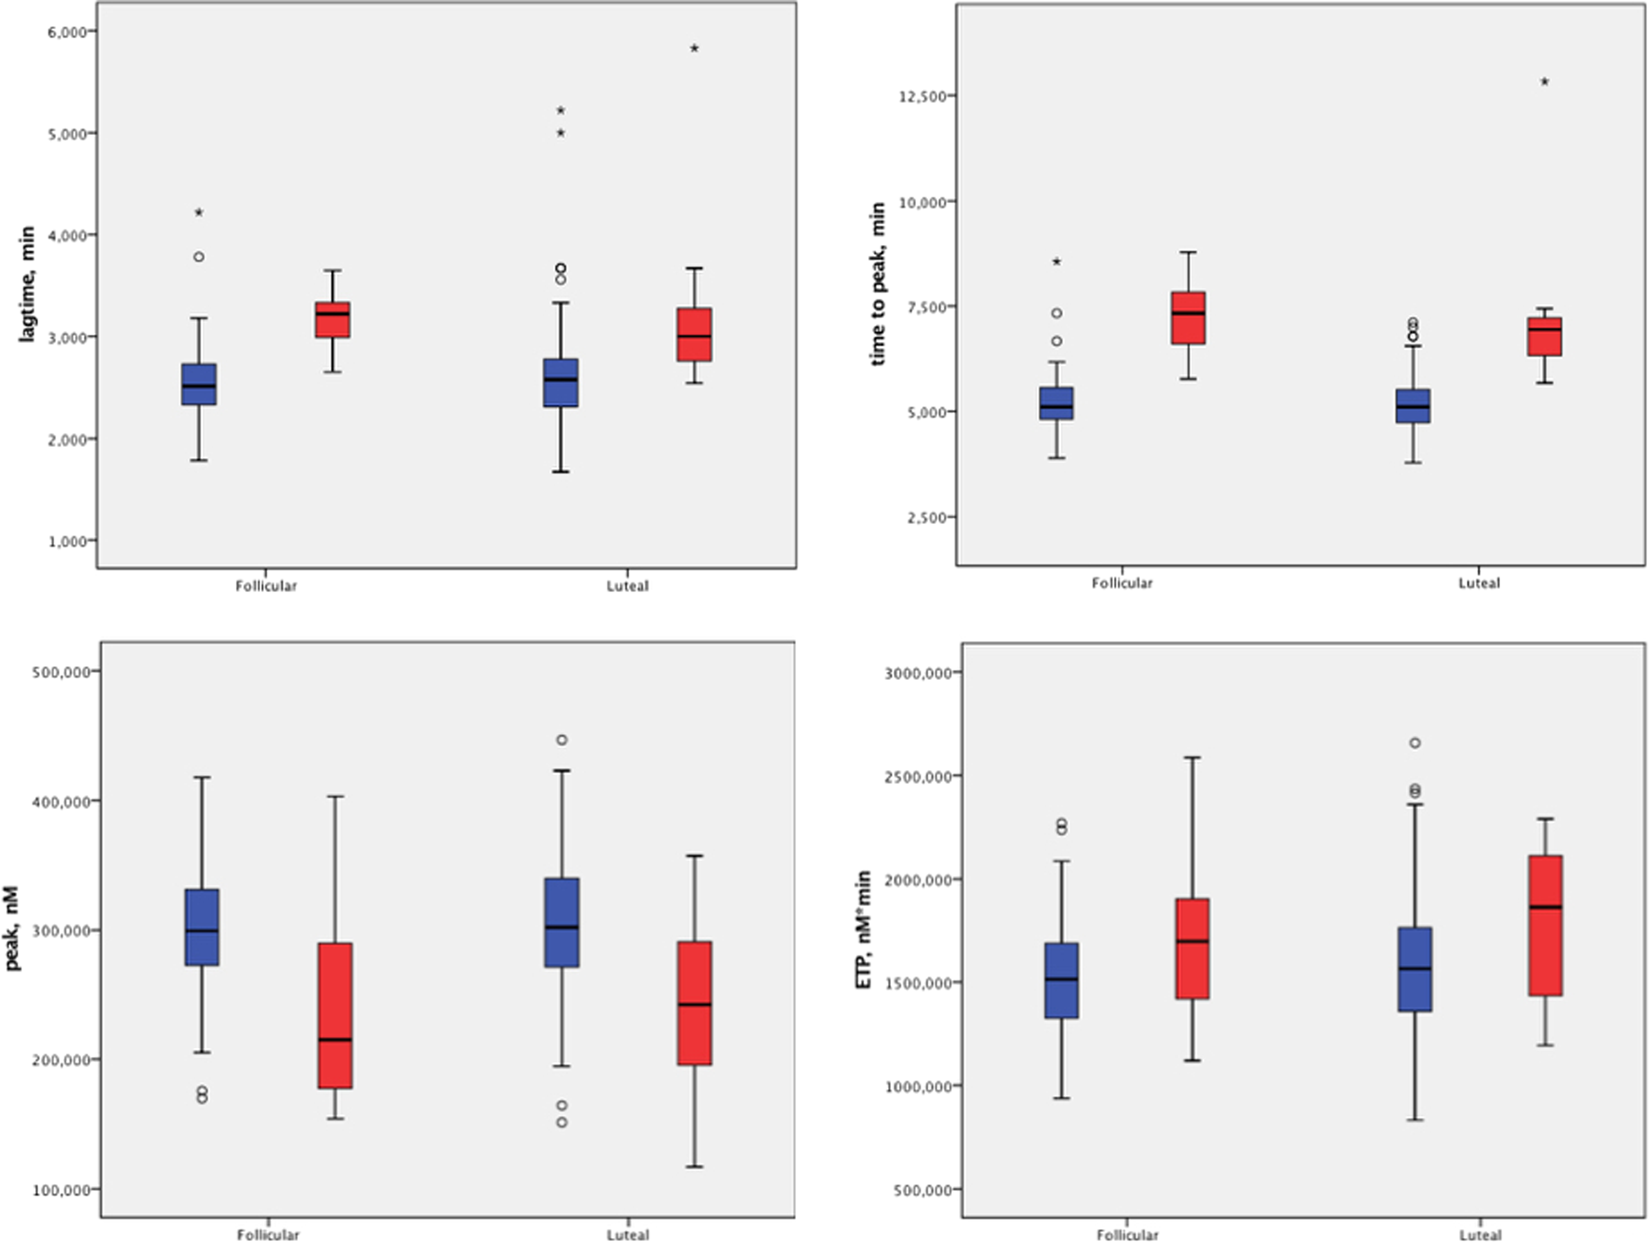 eaa5e6c7b16 Thrombin generation during a regular menstrual cycle in women with von  Willebrand disease | Scientific Reports